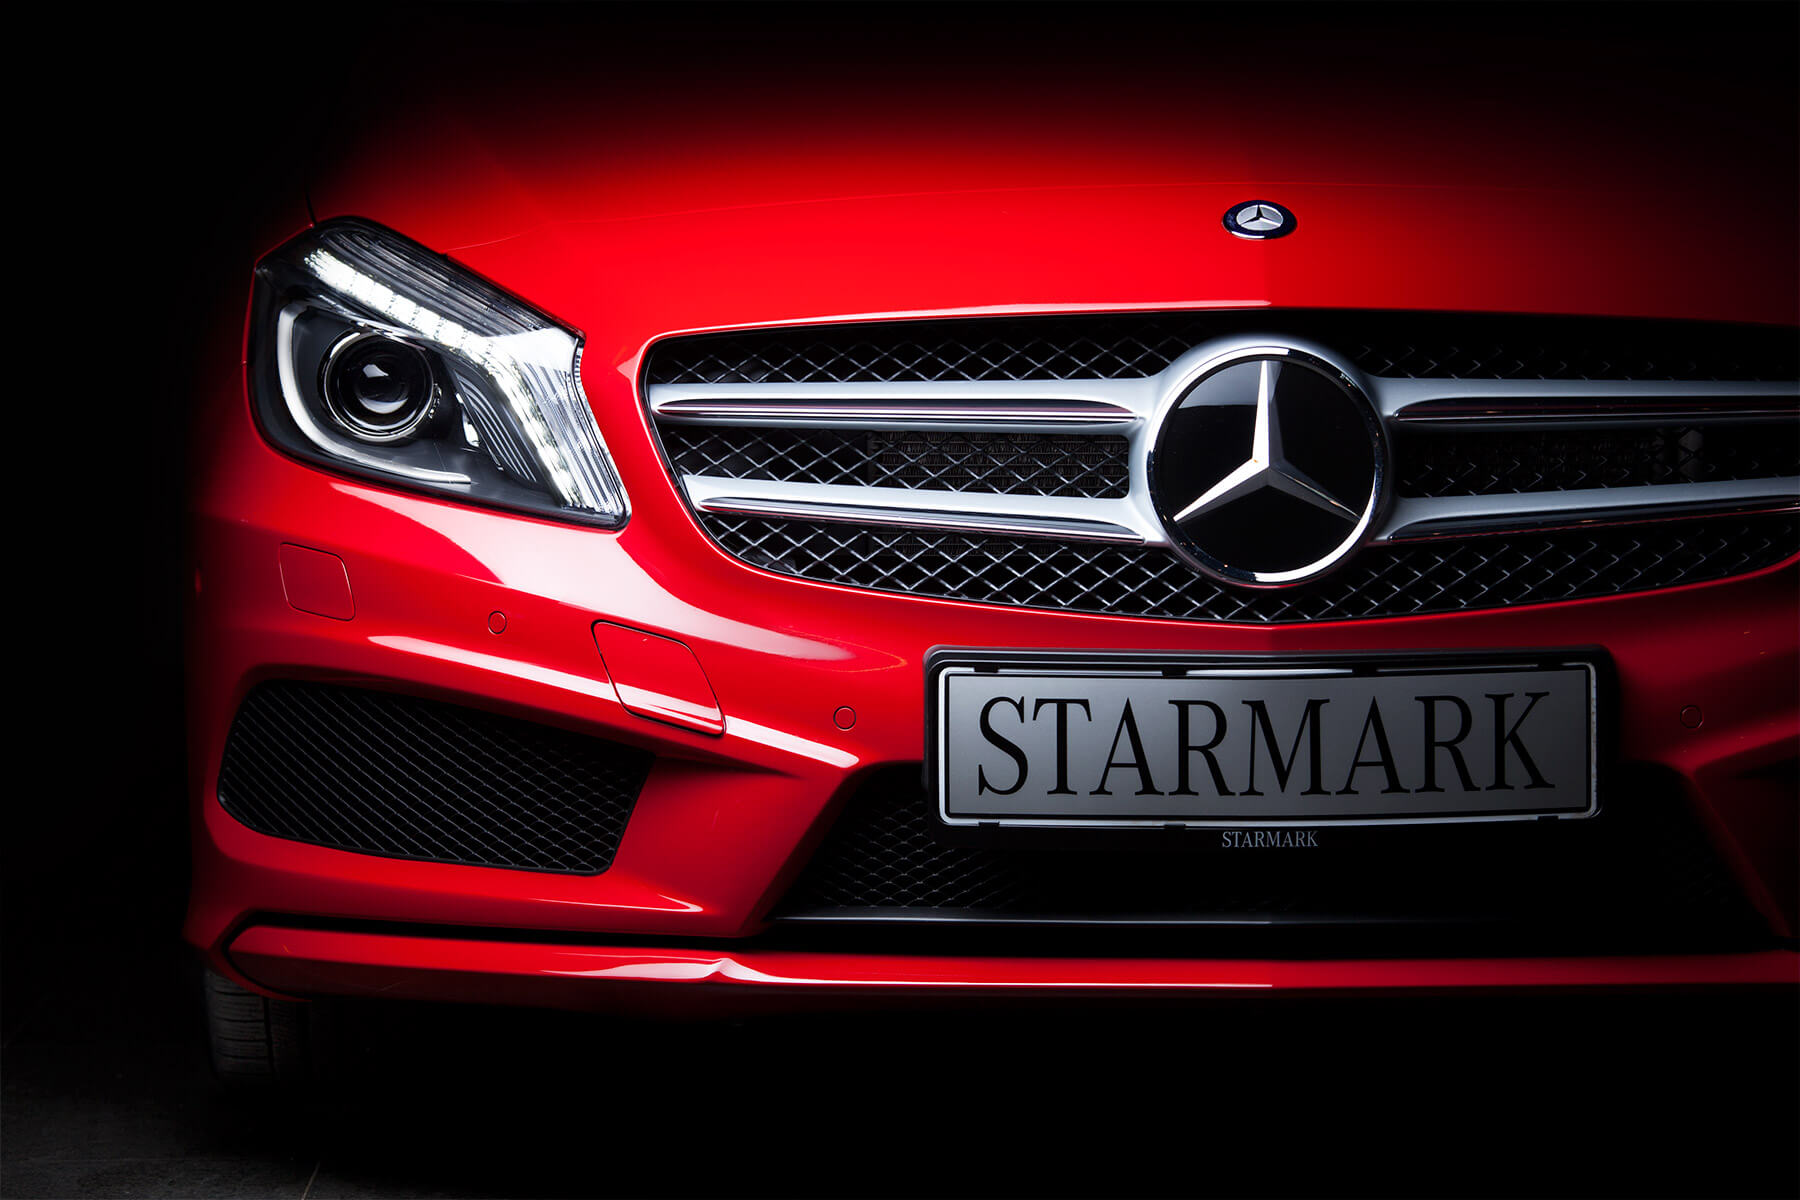 Red Mercedes Benz A250 front - Starmark